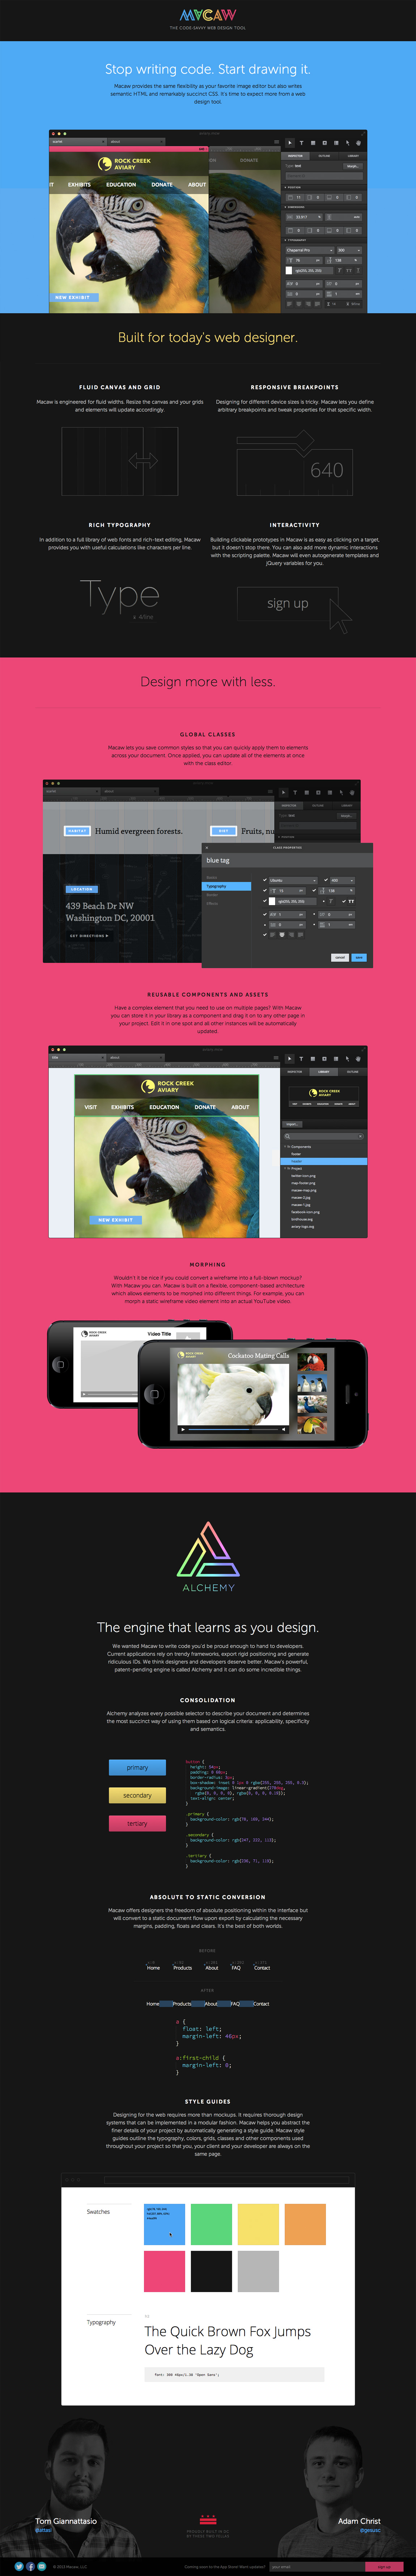 Macaw Website Screenshot